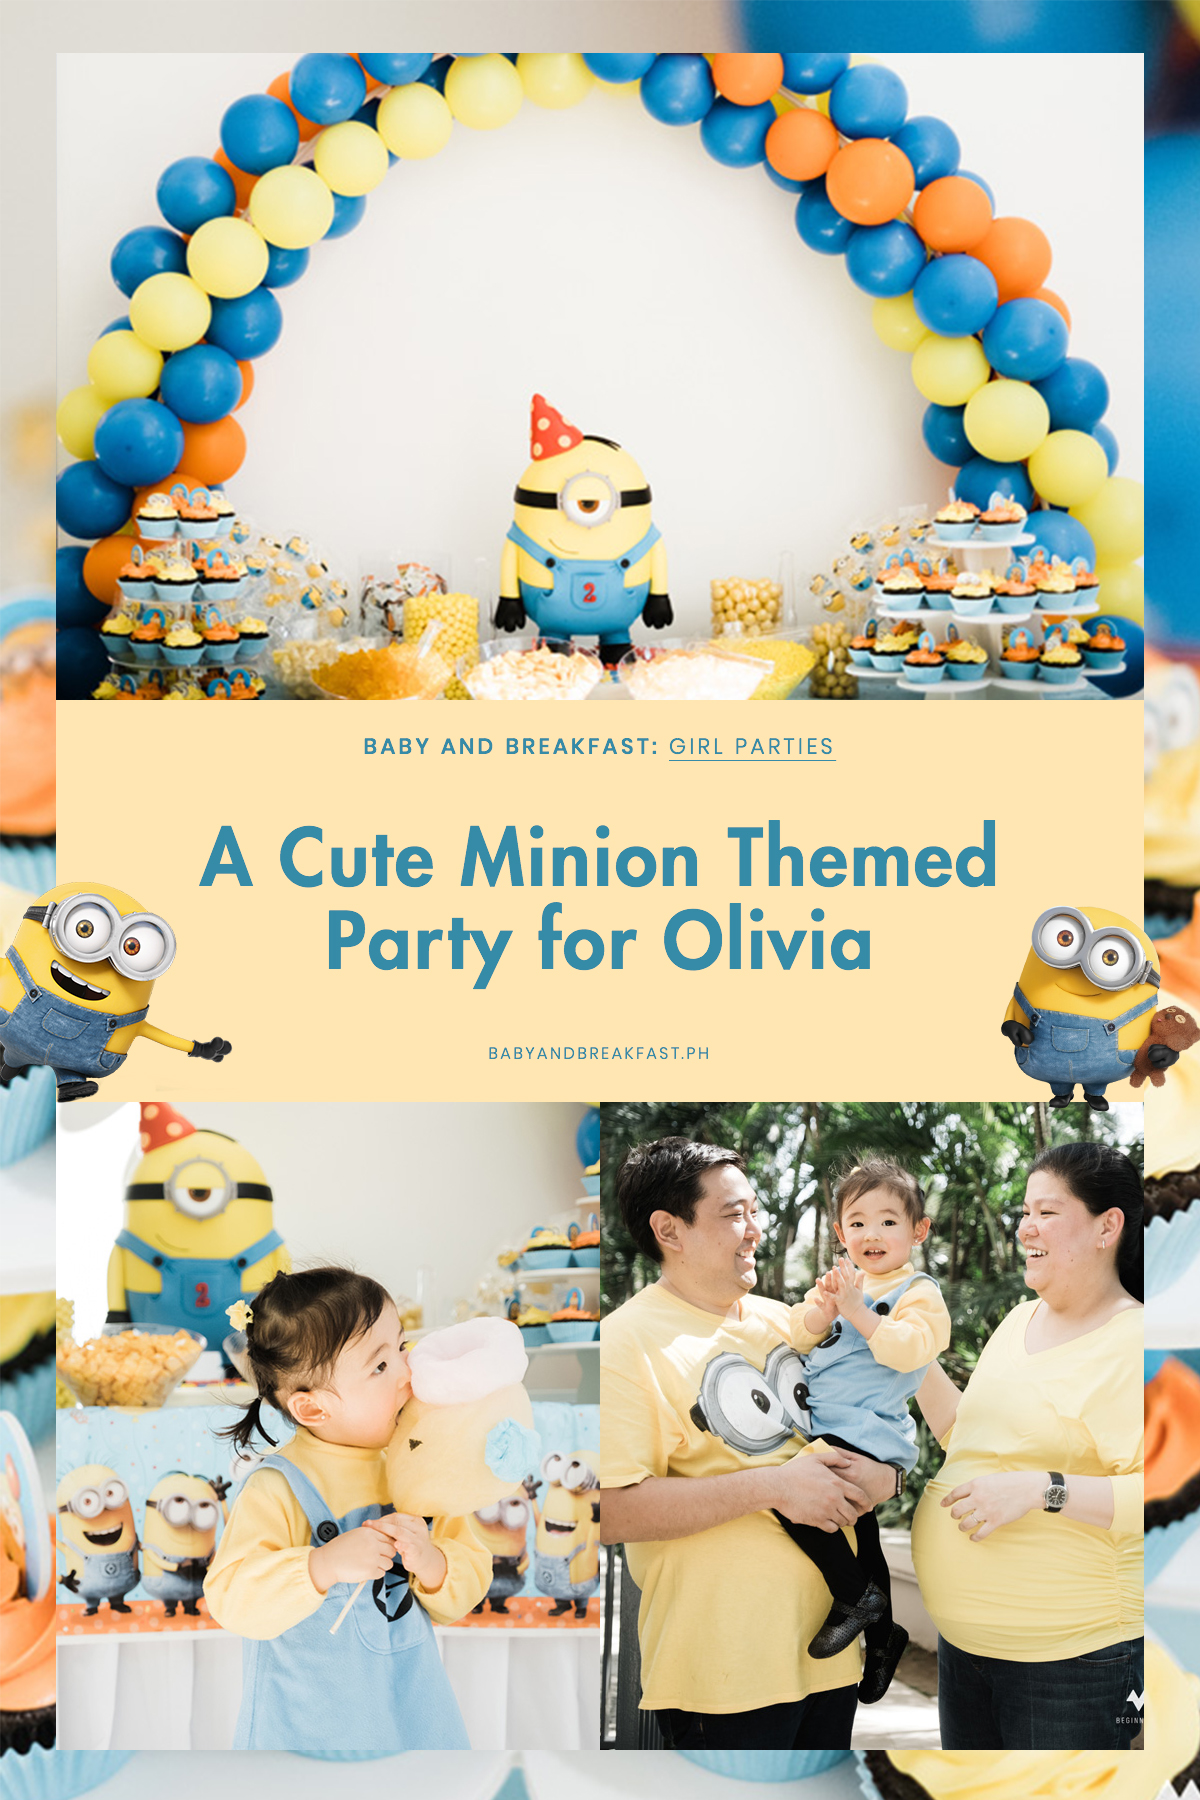 Baby and Breakfast: Girl Parties A Cute Minion Themed Party for Olivia